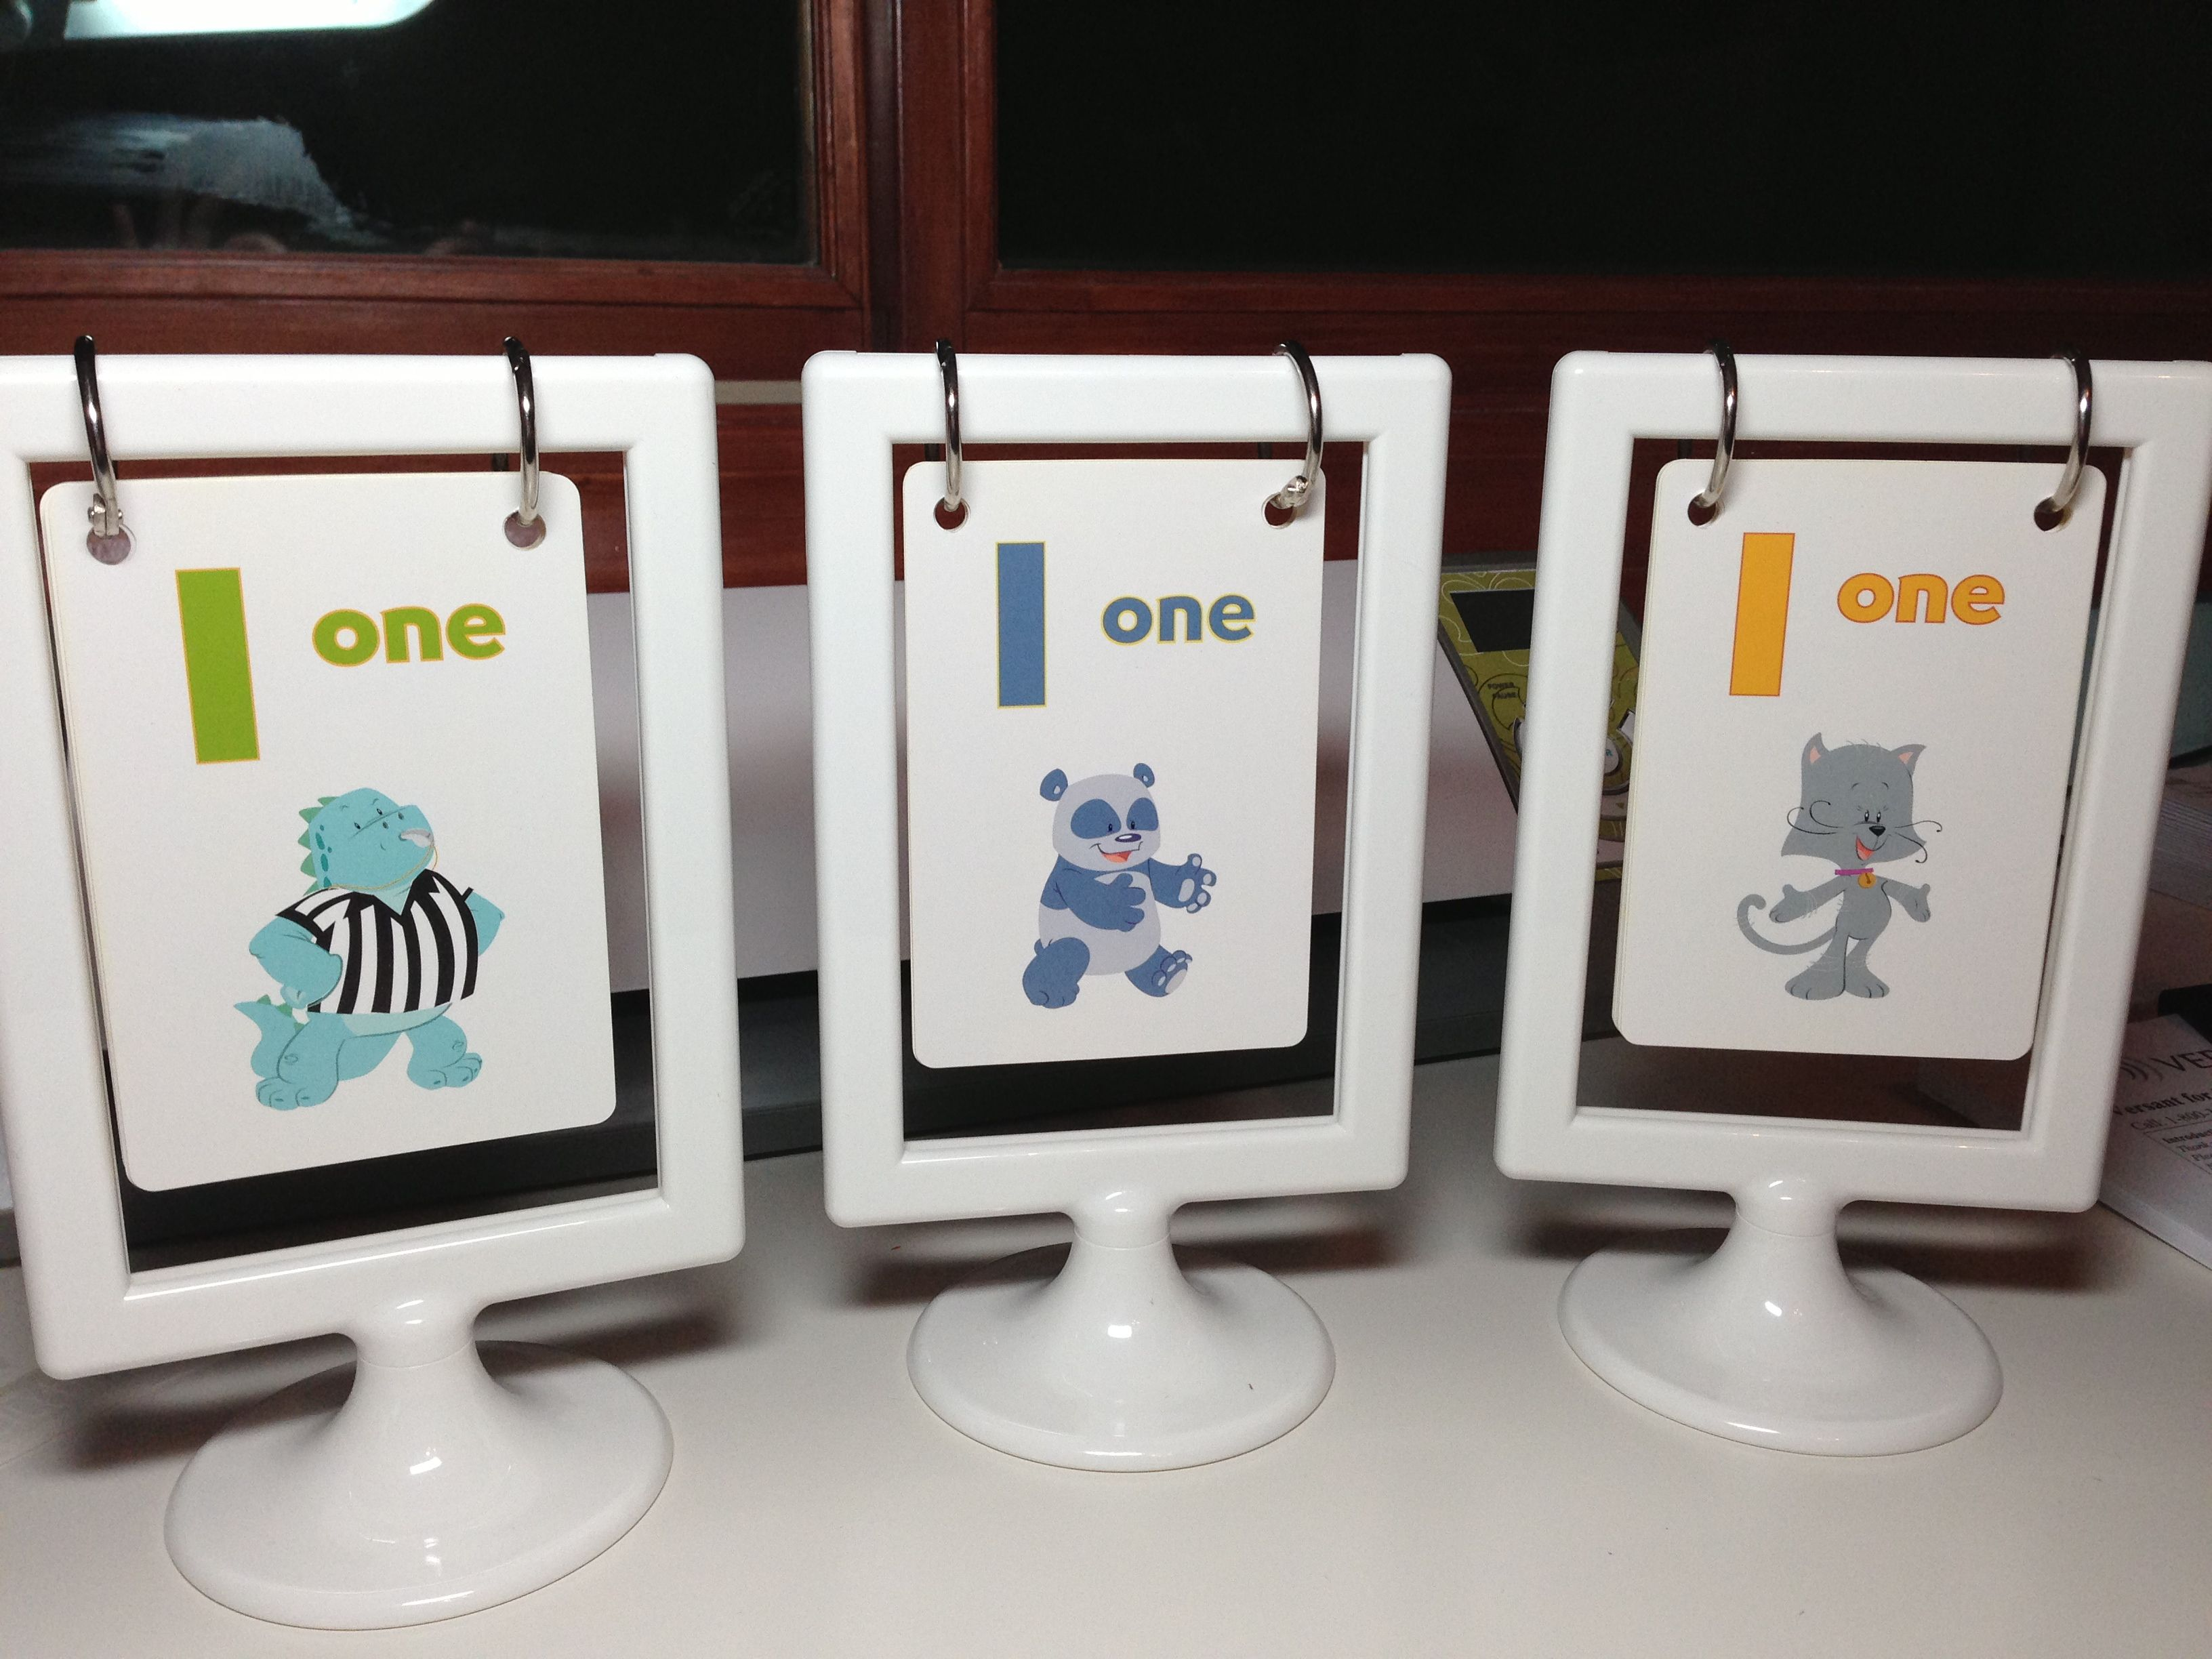 Recycled Tolsby Frames From Wedding With Dollar Store Number Flash Cards One Pack Had 3 Sets Score On Preschool Decor Ikea Tolsby Frame Creative Classroom